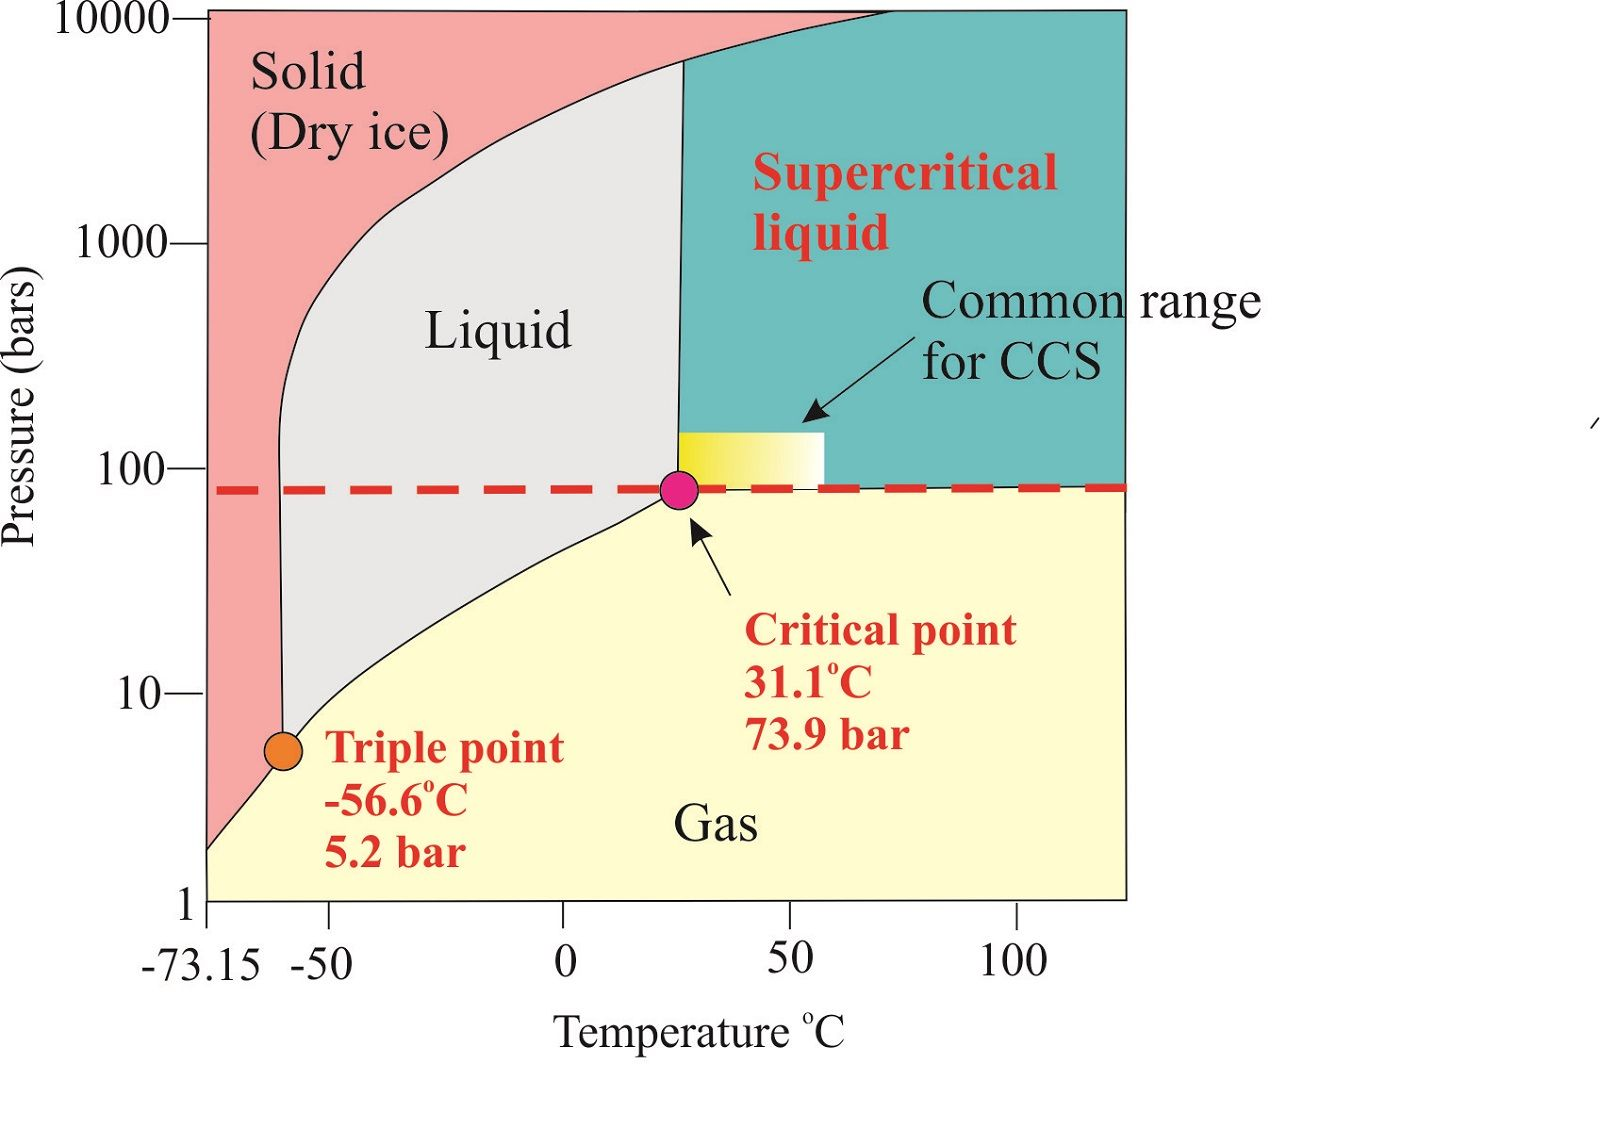 phase diagram of co2 change printable diagram printable diagramphase diagram of co2 change printable diagram [ 1600 x 1129 Pixel ]